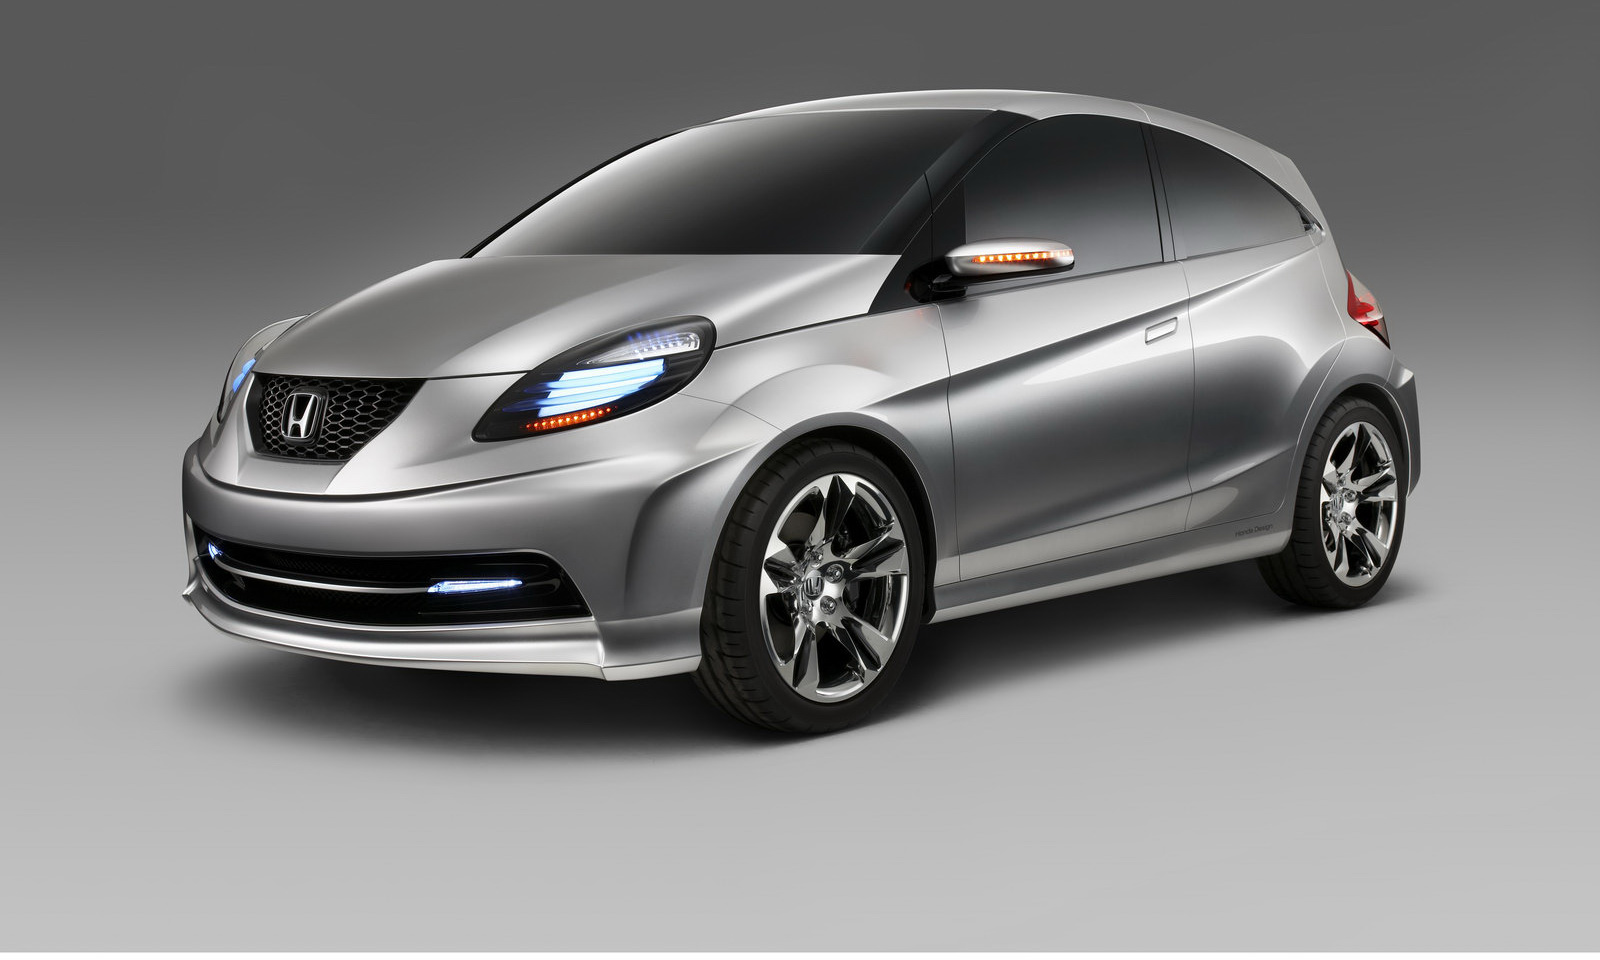 Honda Launches New Small Car Concept Wallpaper Download